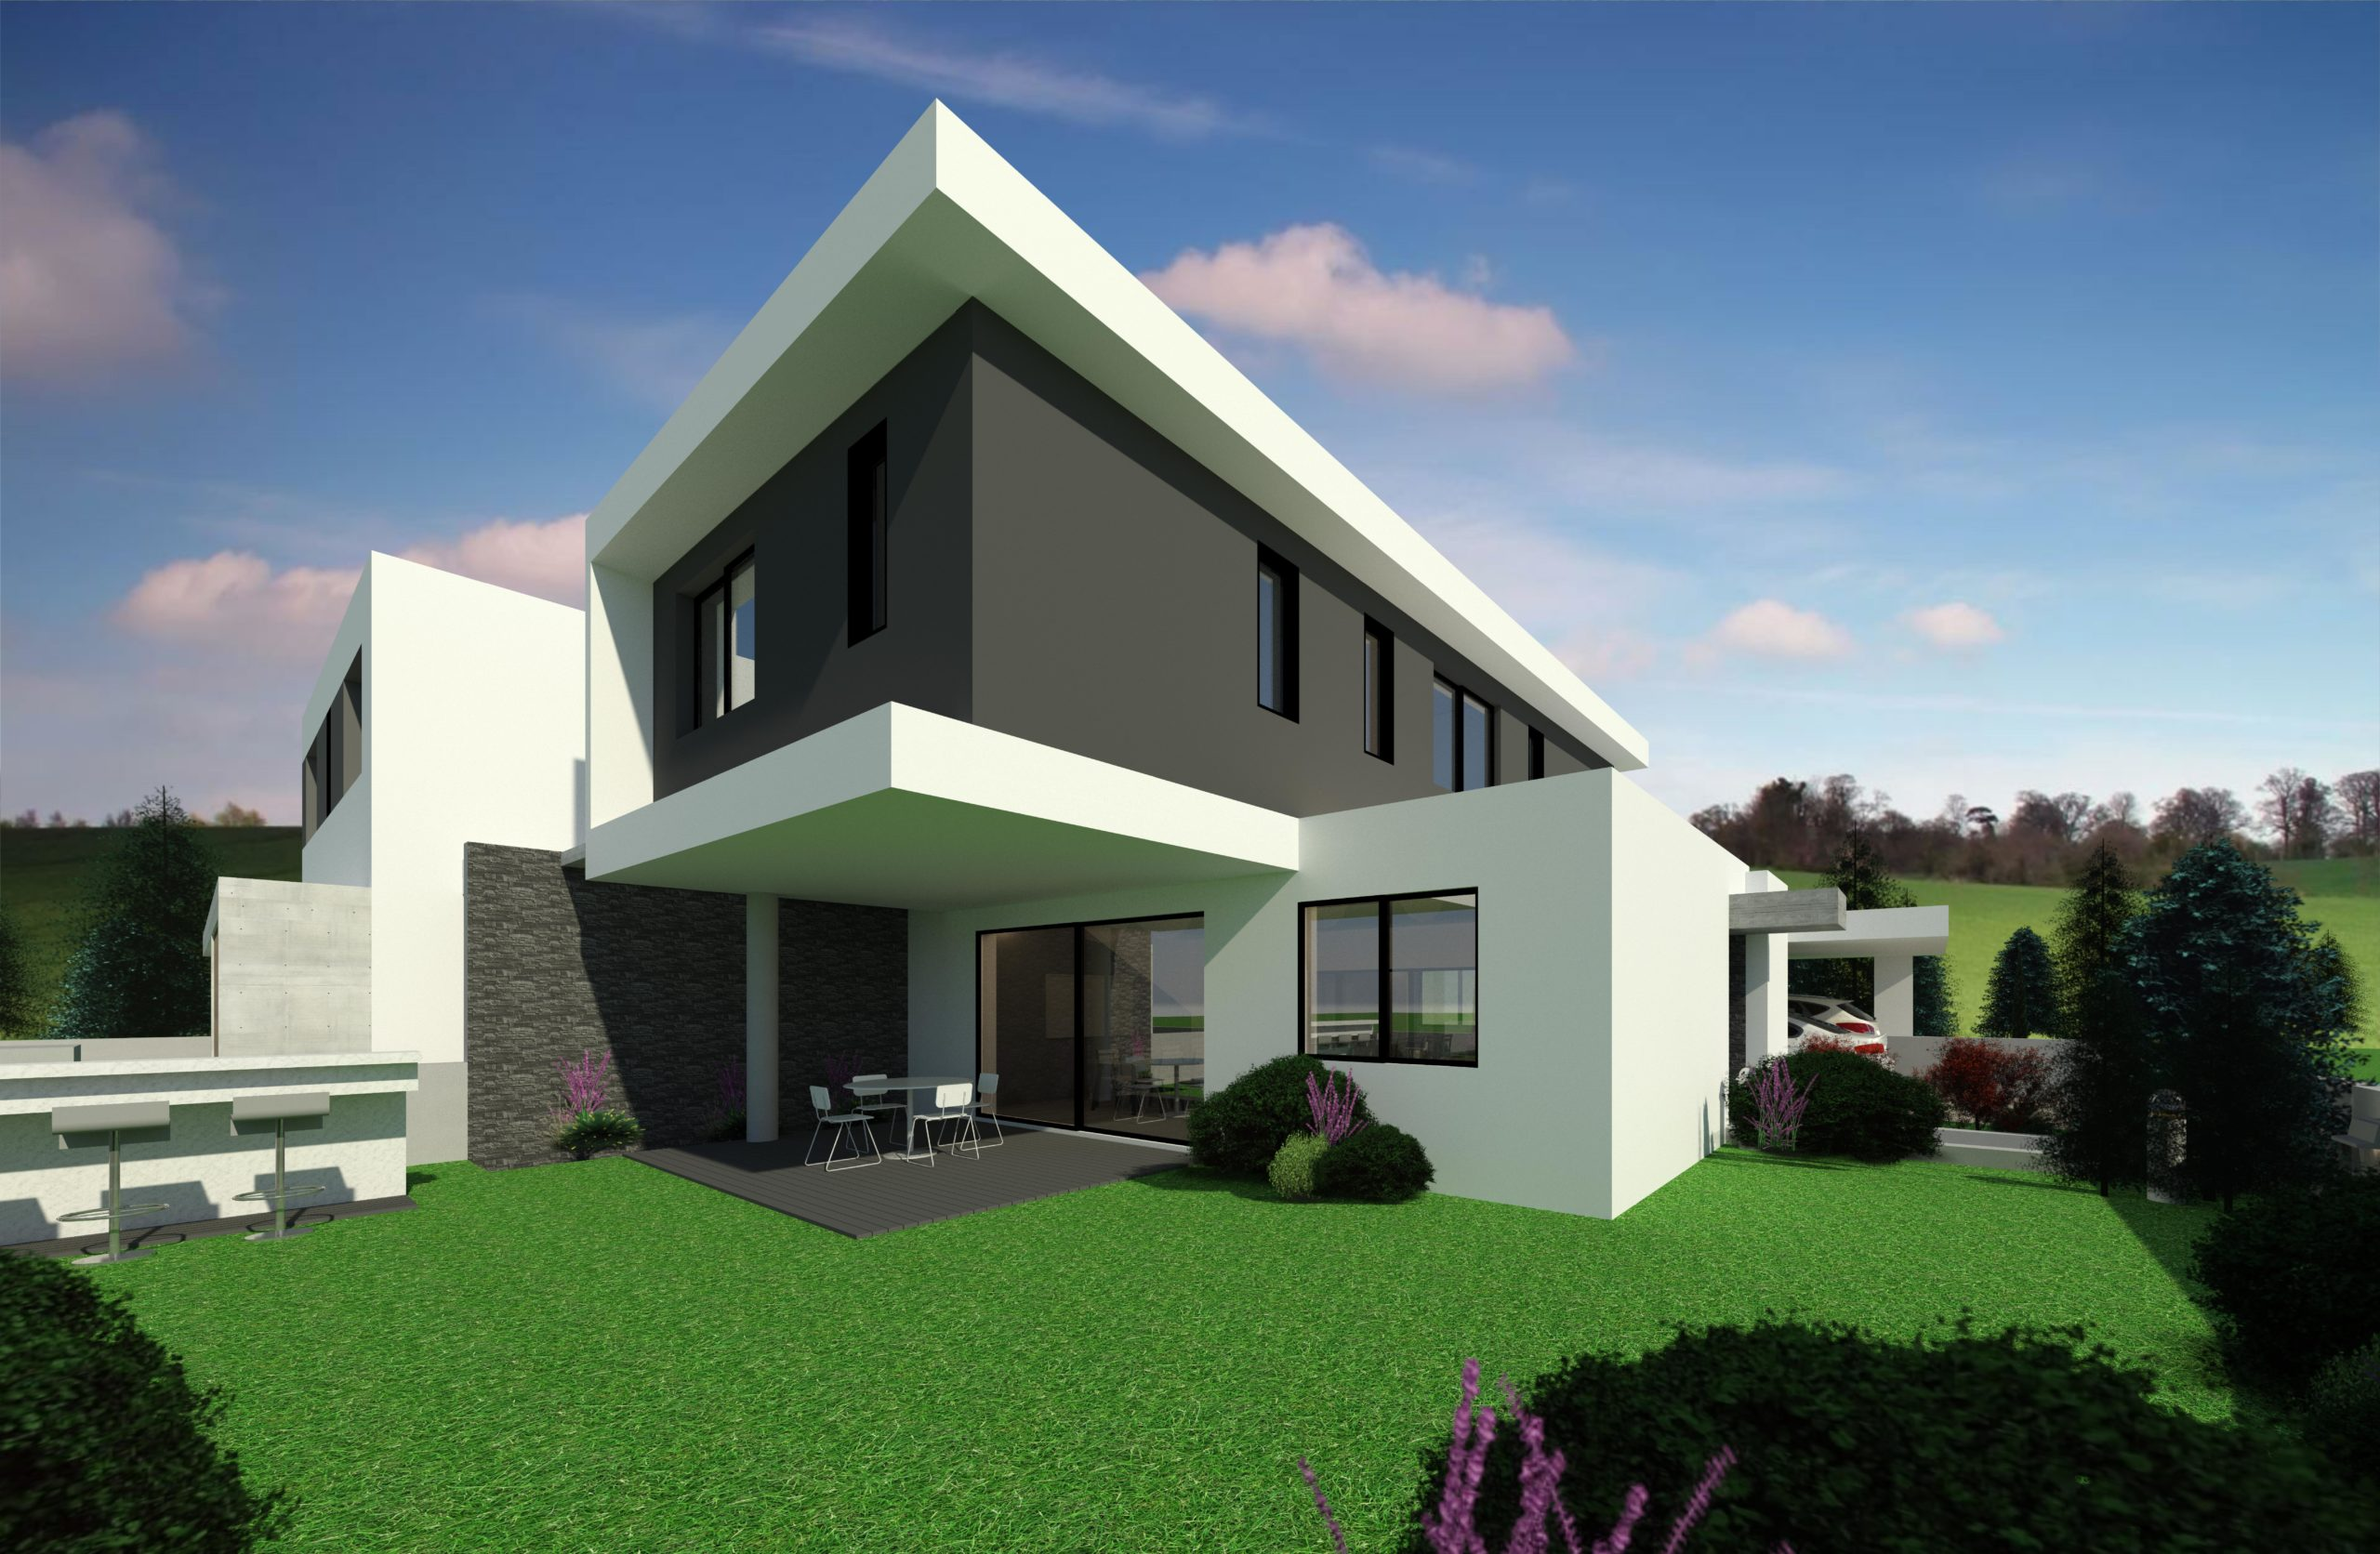 3 Bedroom House for Sale in Strovolos – near GSP Stadium